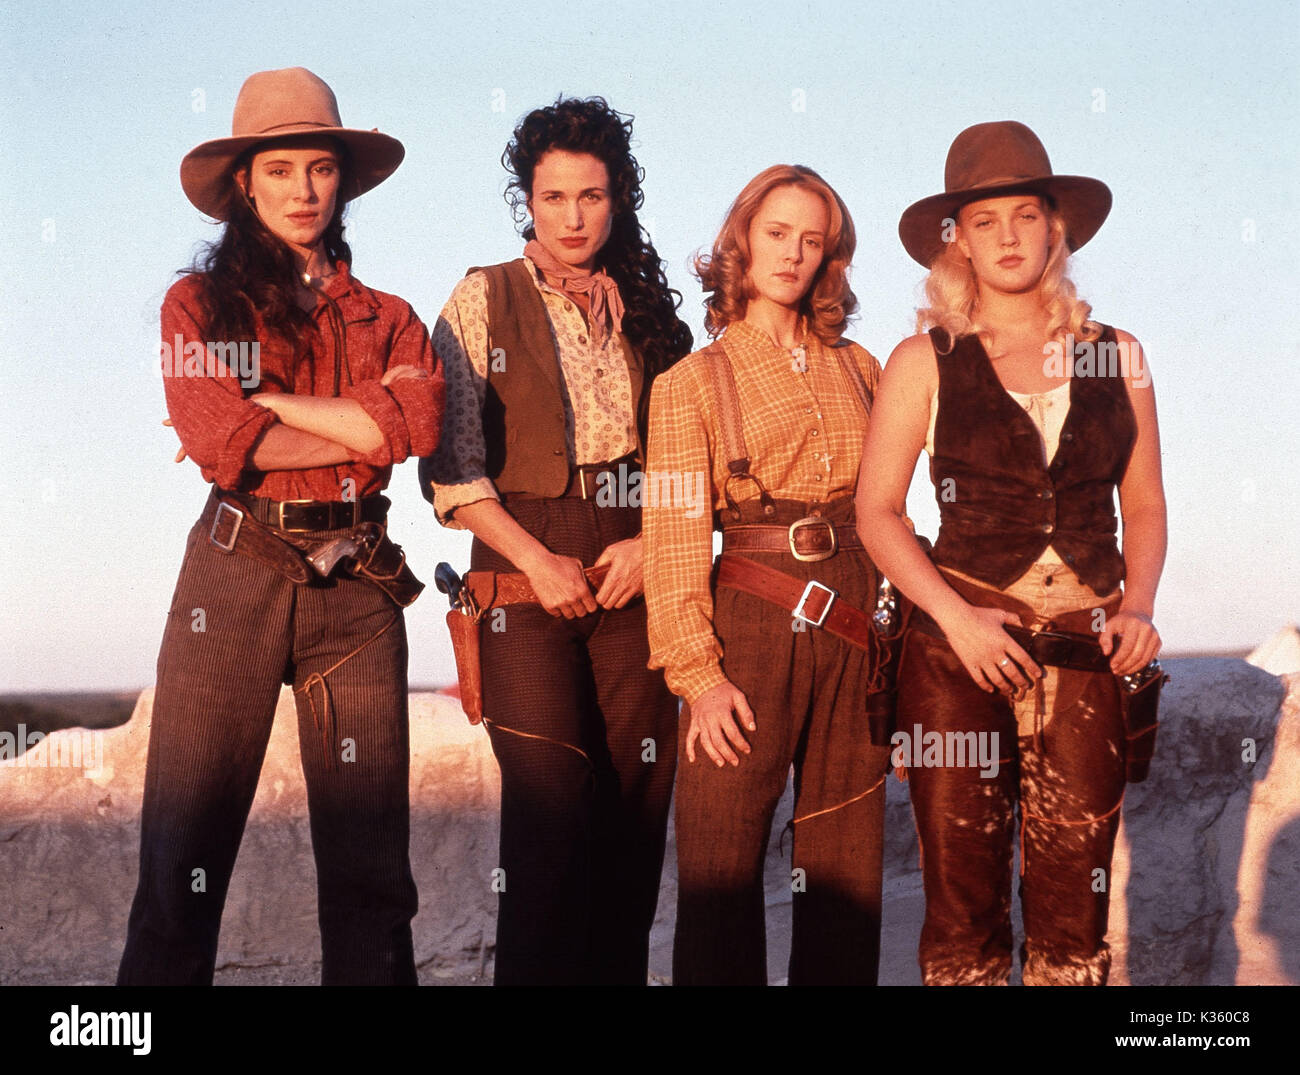 BAD GIRLS L-R MADELEINE STOWE, ANDIE MACDOWELL, MARY STUART MASTERSON, DREW BARRYMORE Stock Photo